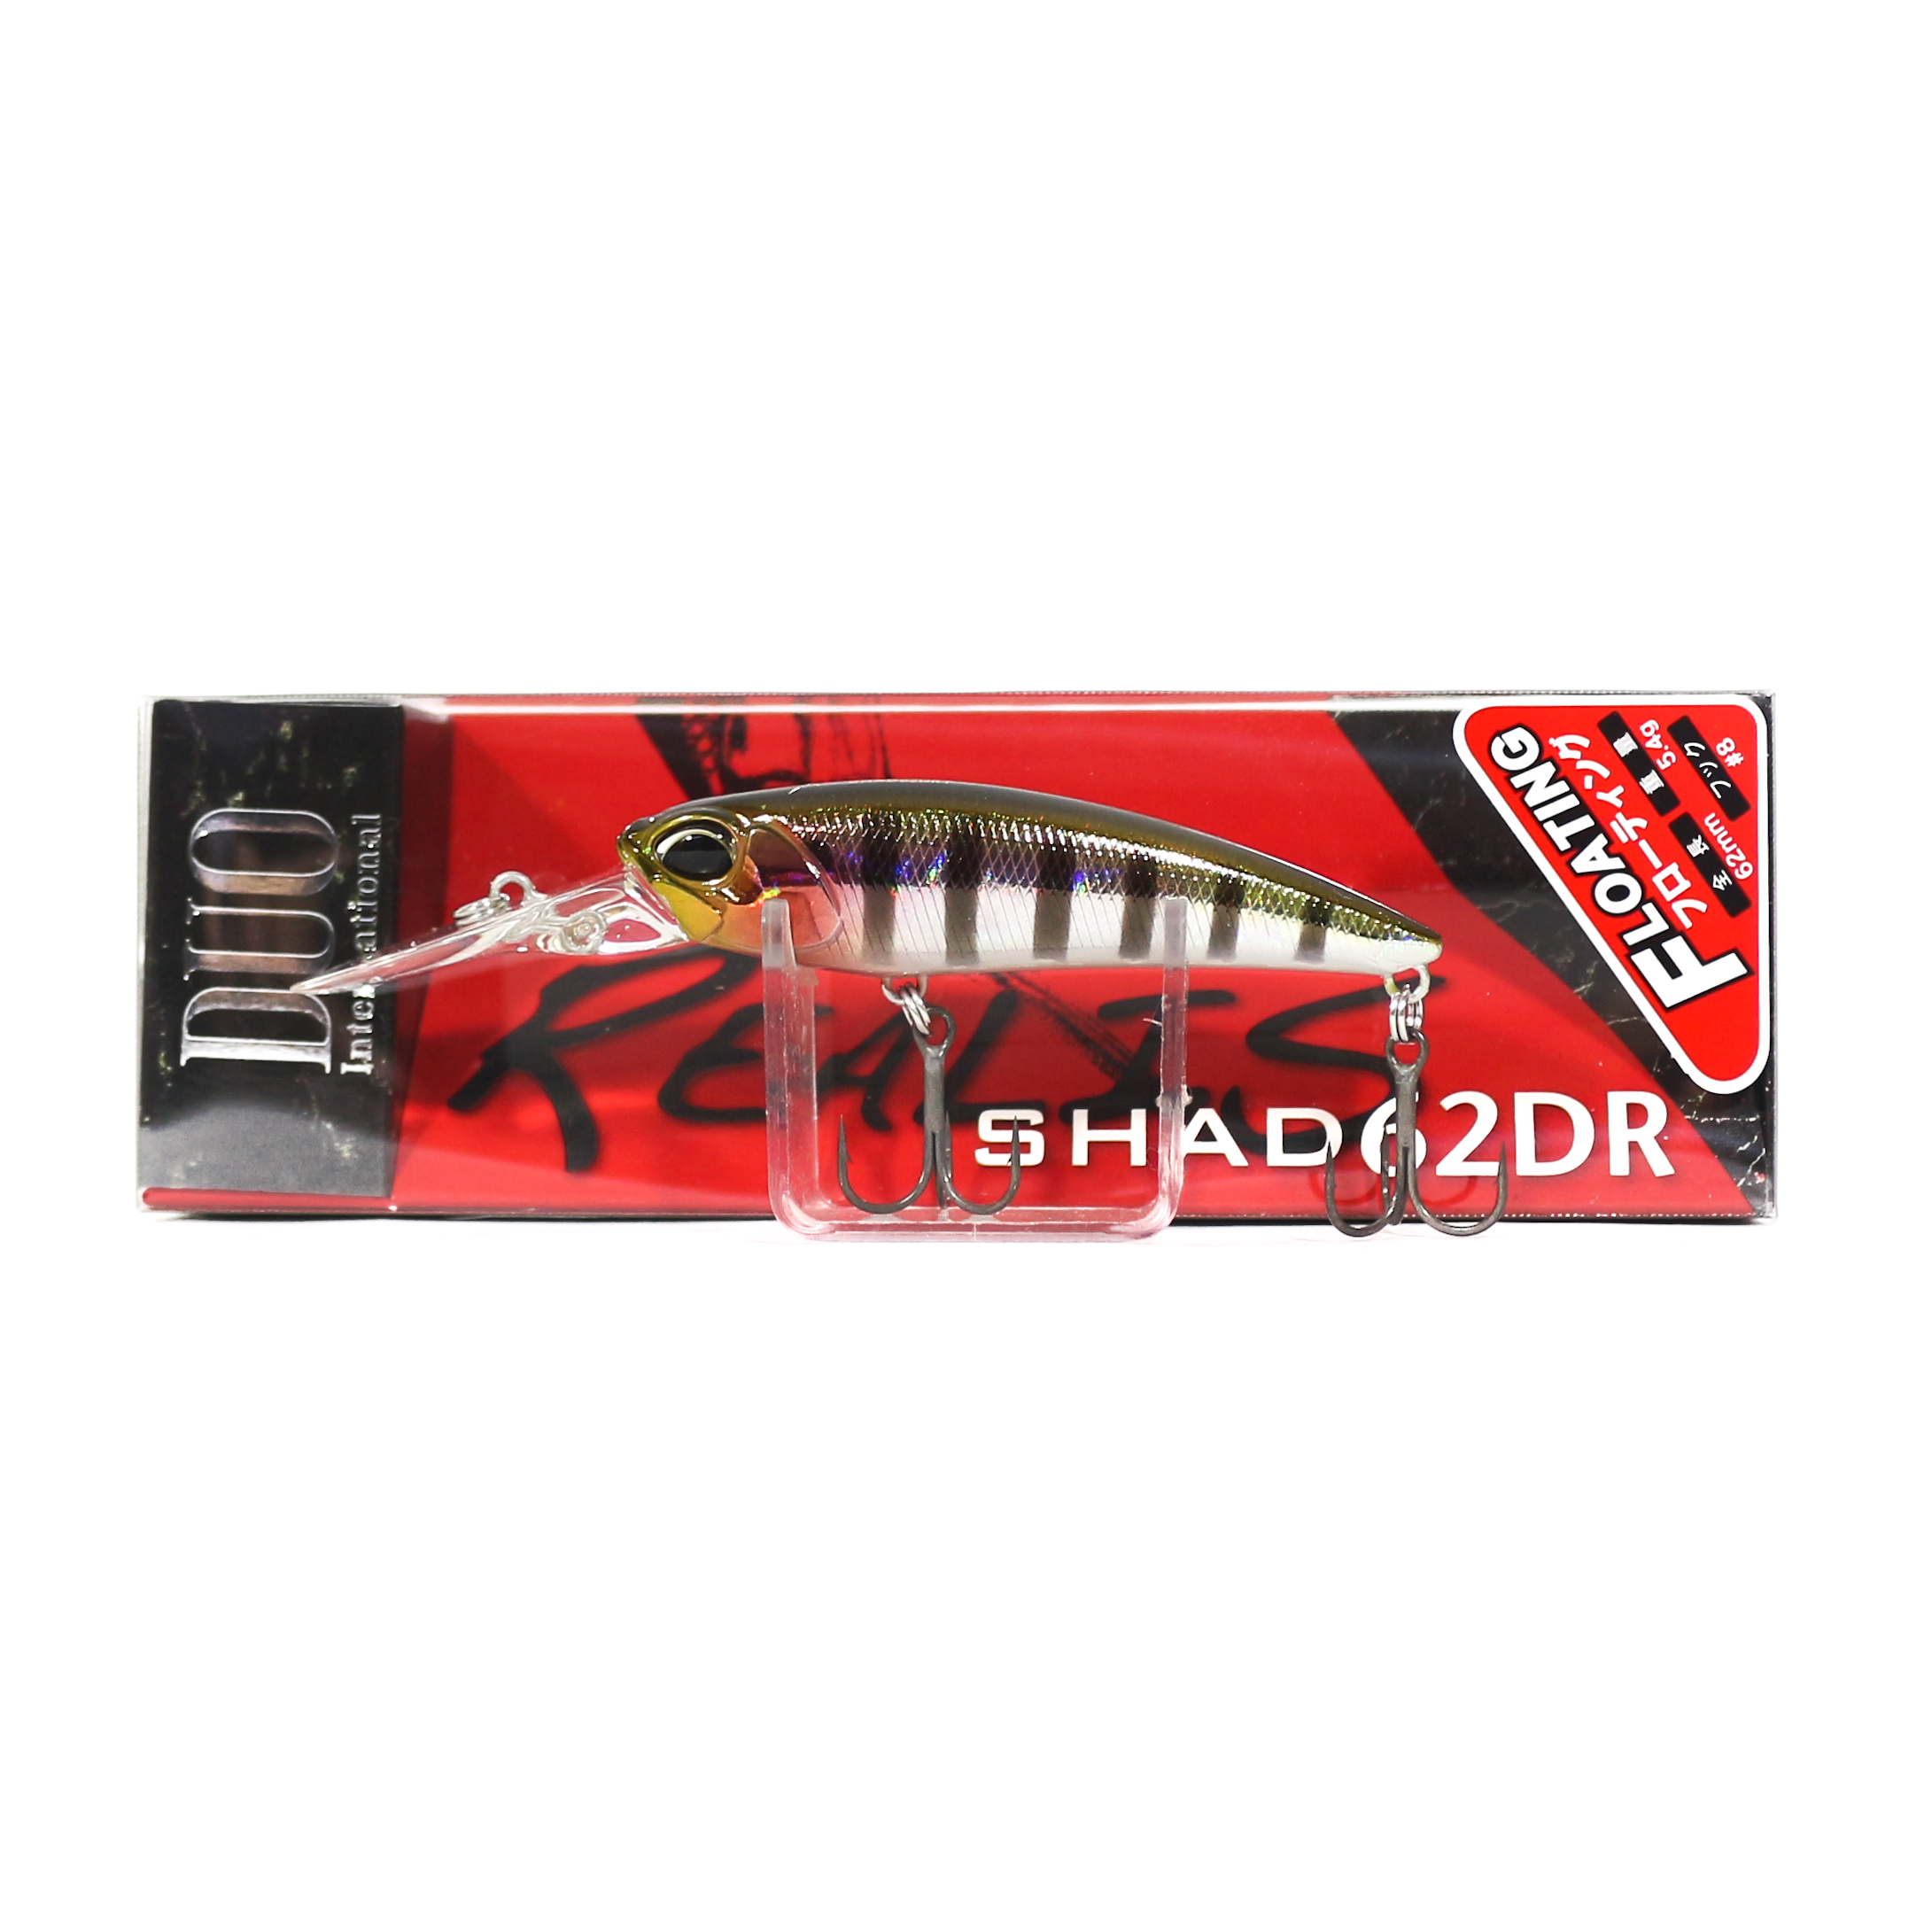 Duo Realis Shad 62 DR F Floating Lure ADA3058 (6625)